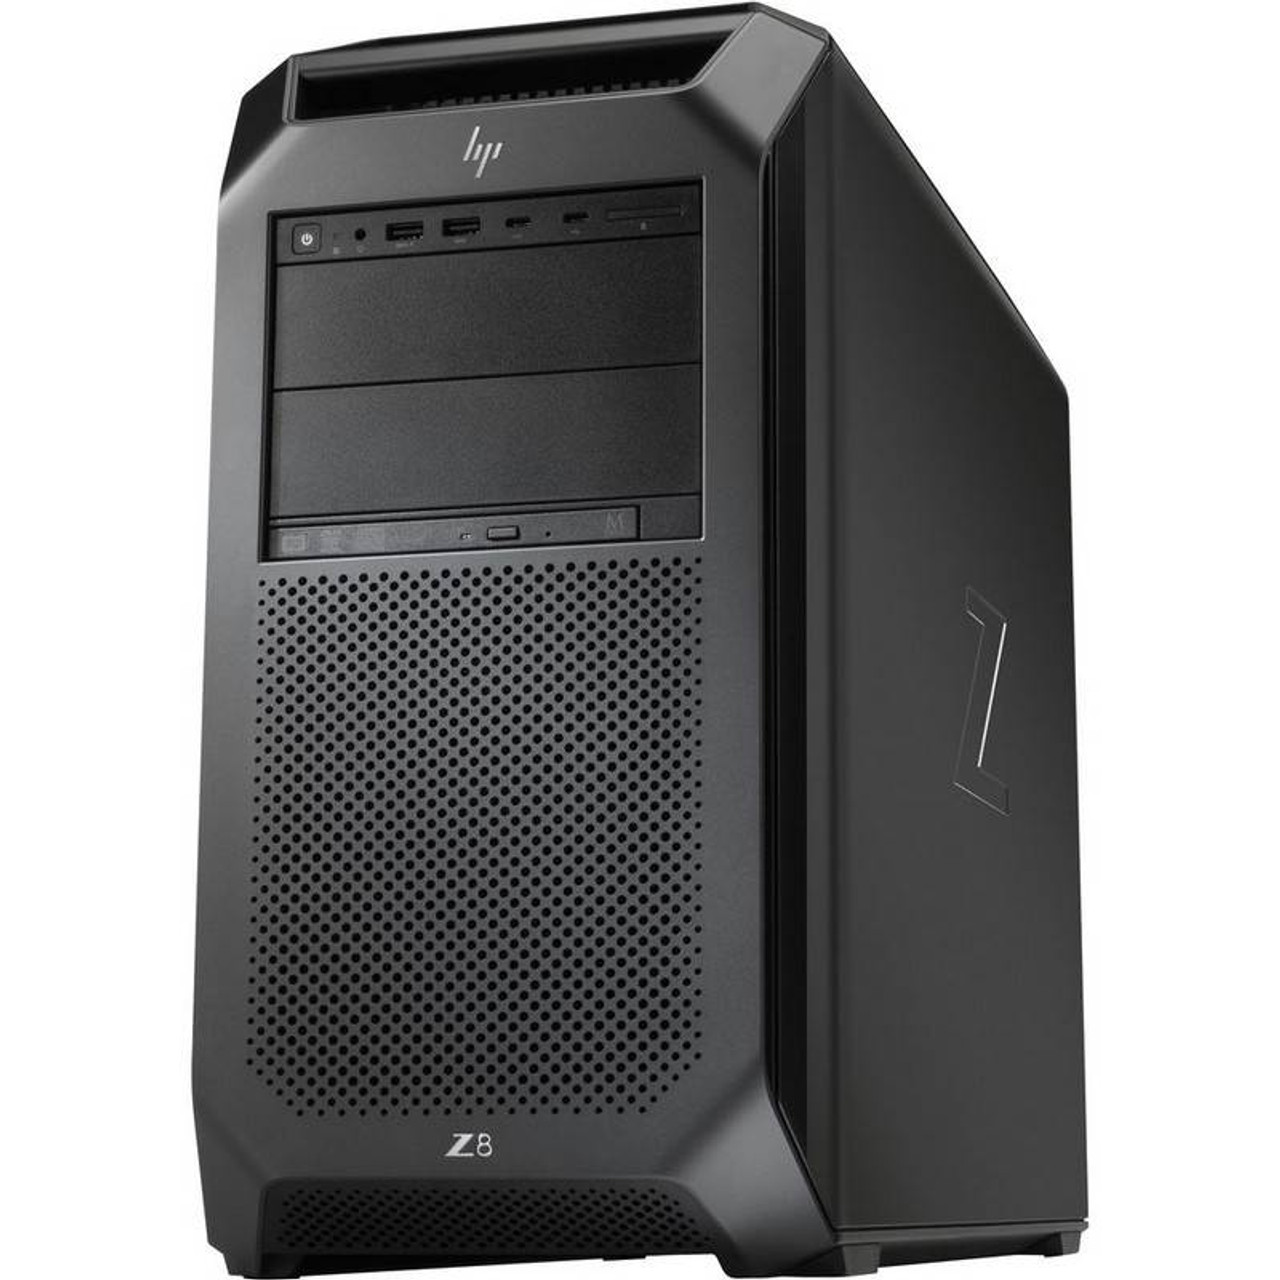 Image for HP Z8 G4 Tower Workstation XEON 4216 128GB 2TB SSD + 4TB HDD RTX5000 Win10 Pro CX Computer Superstore